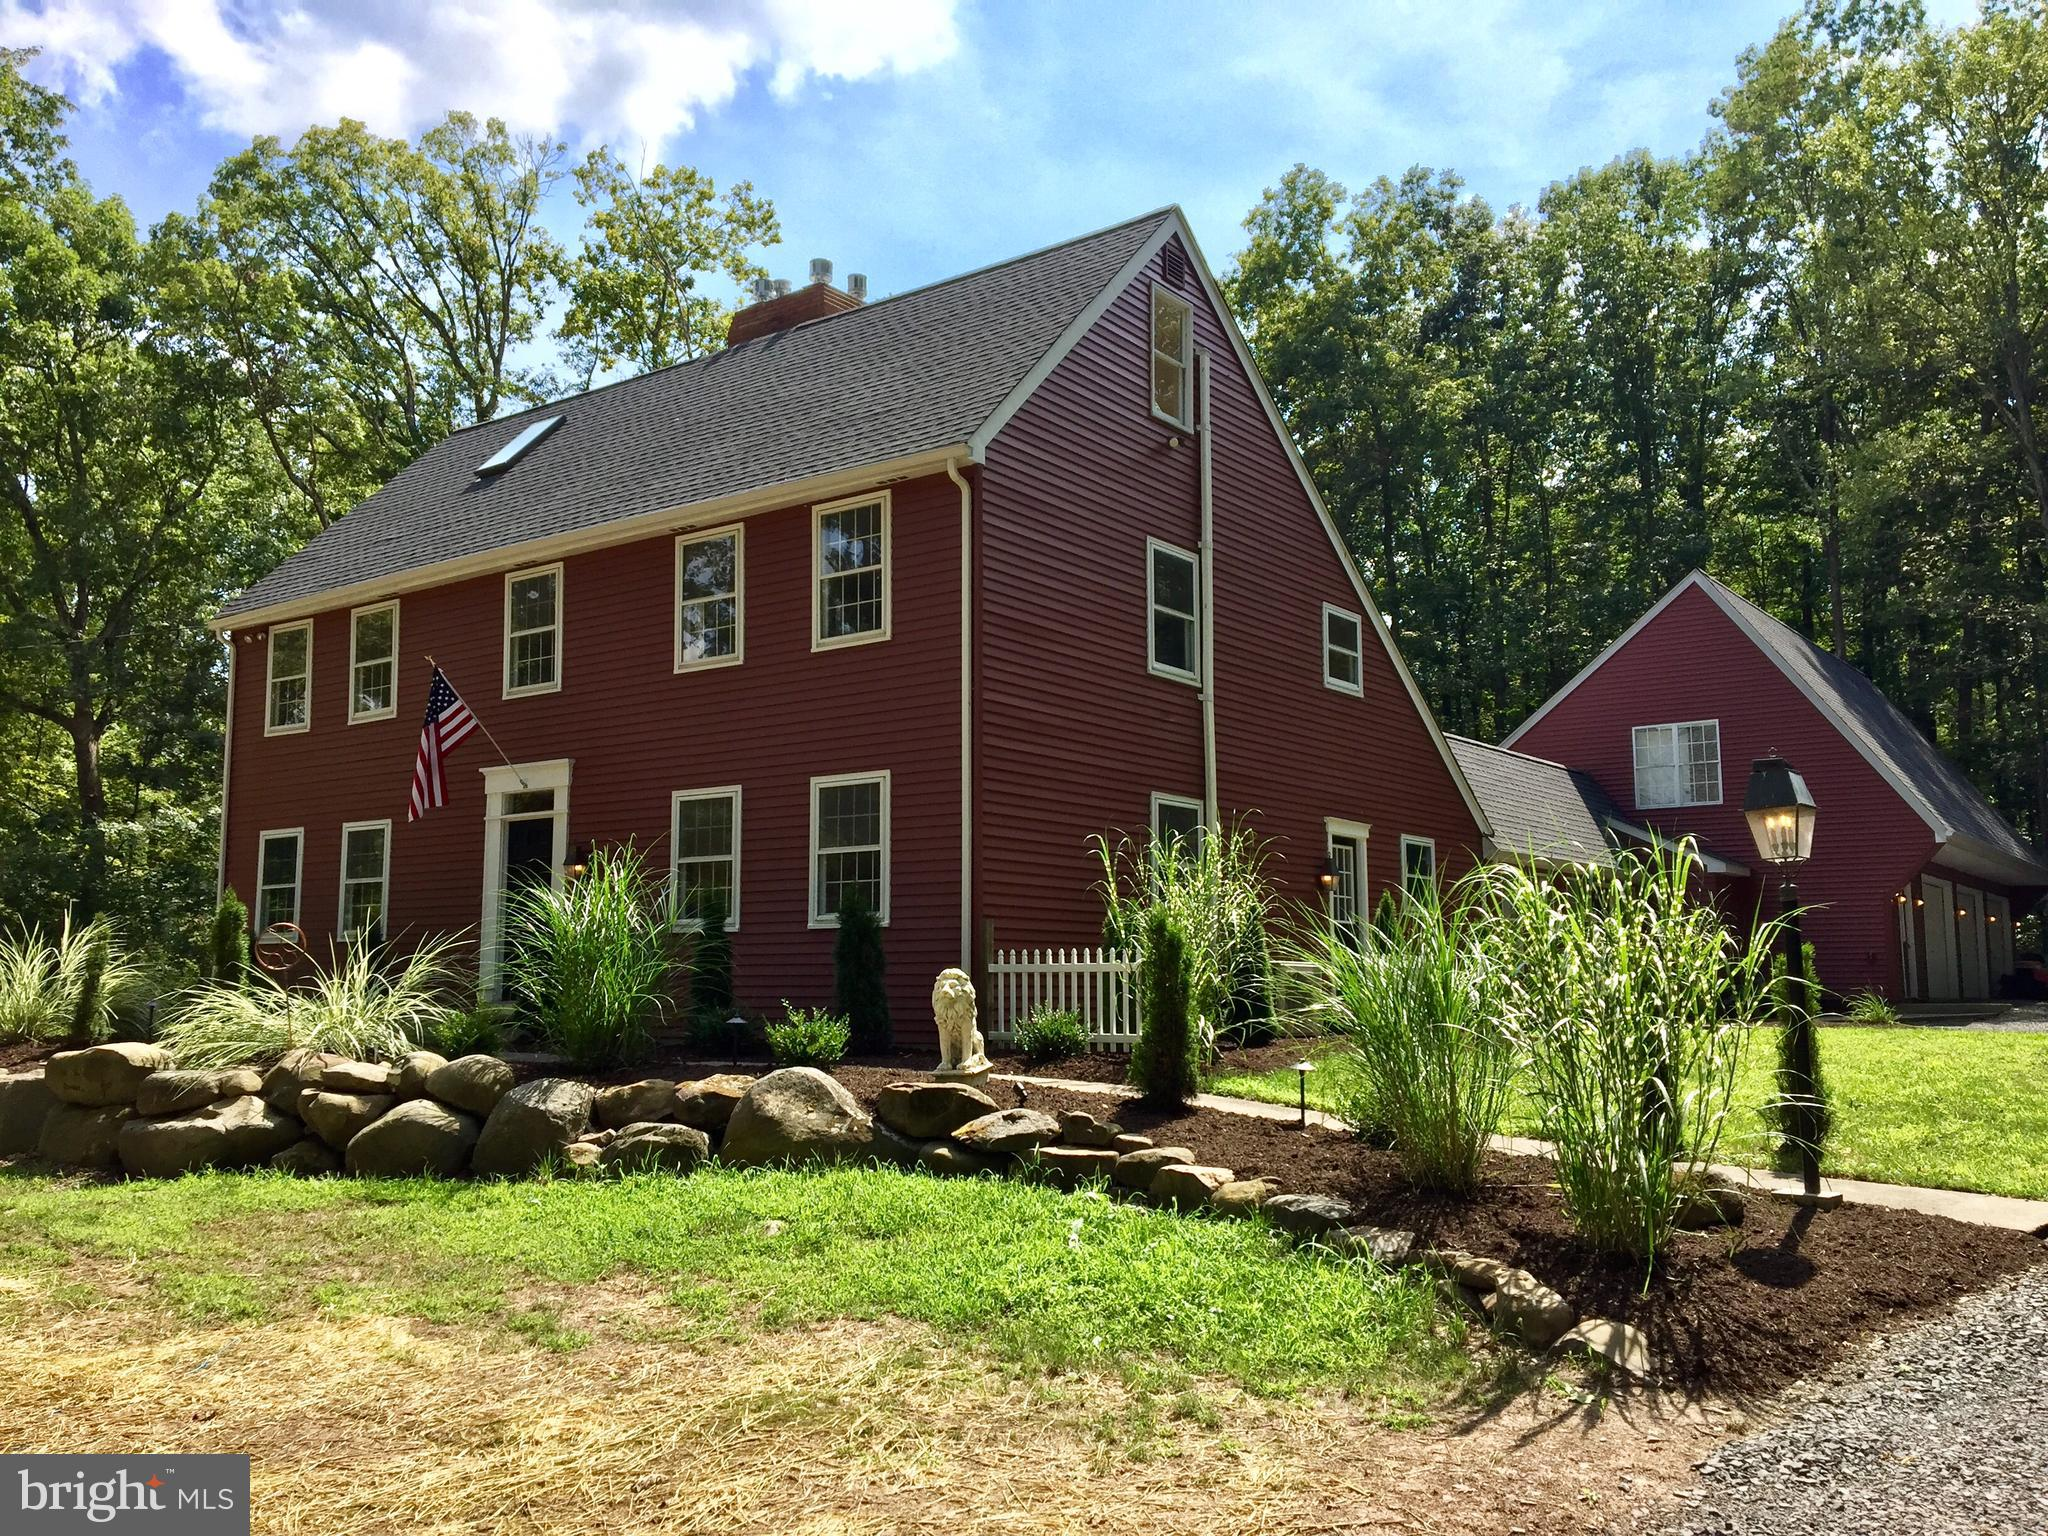 573 HAYCOCK RUN ROAD, KINTNERSVILLE, PA 18930